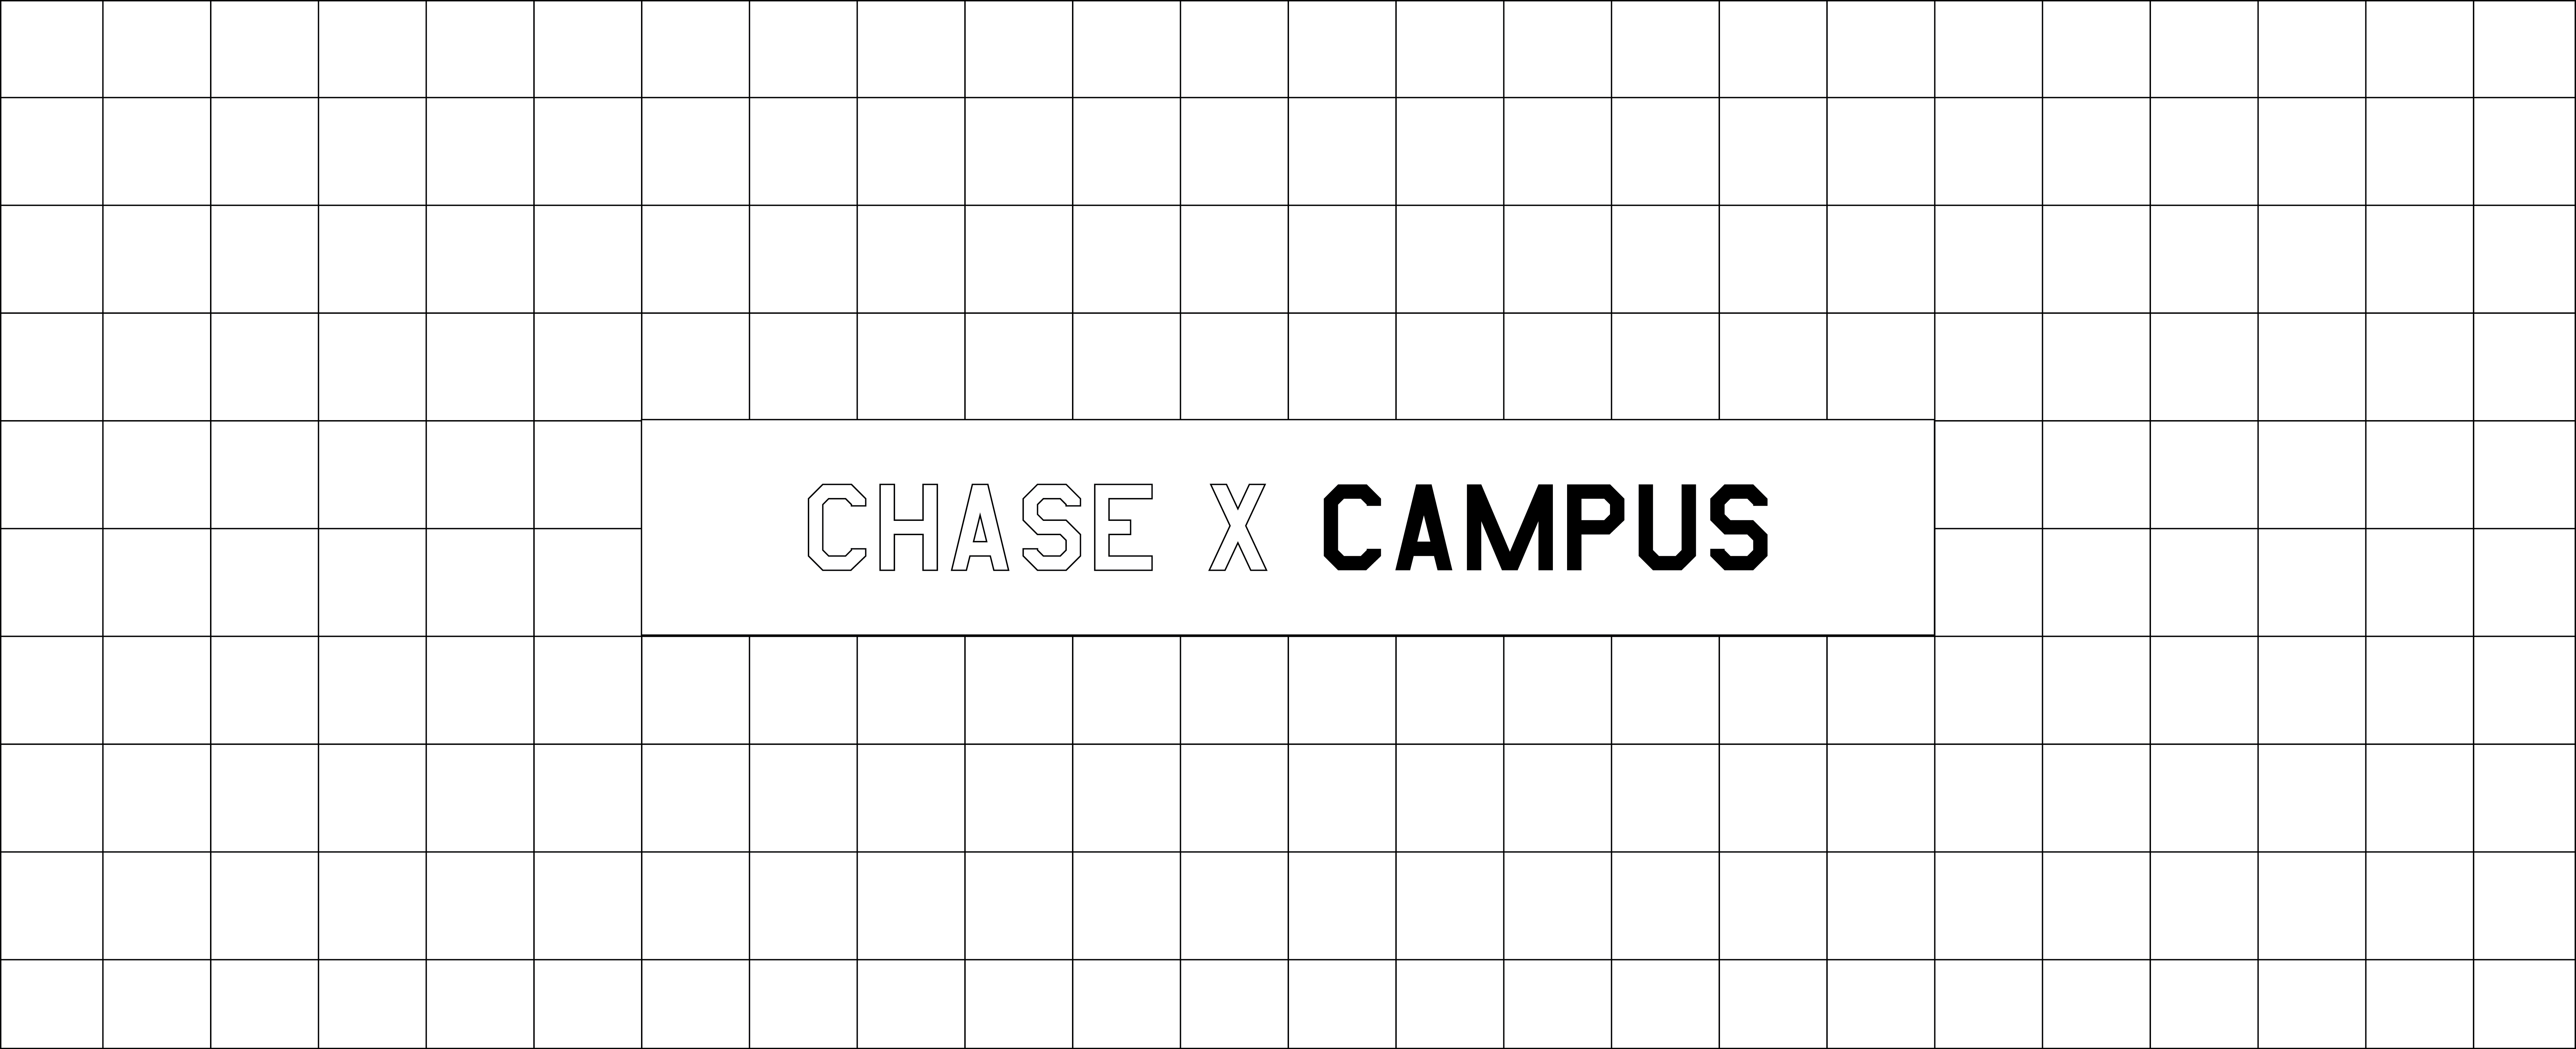 CHASE X CAMPUS